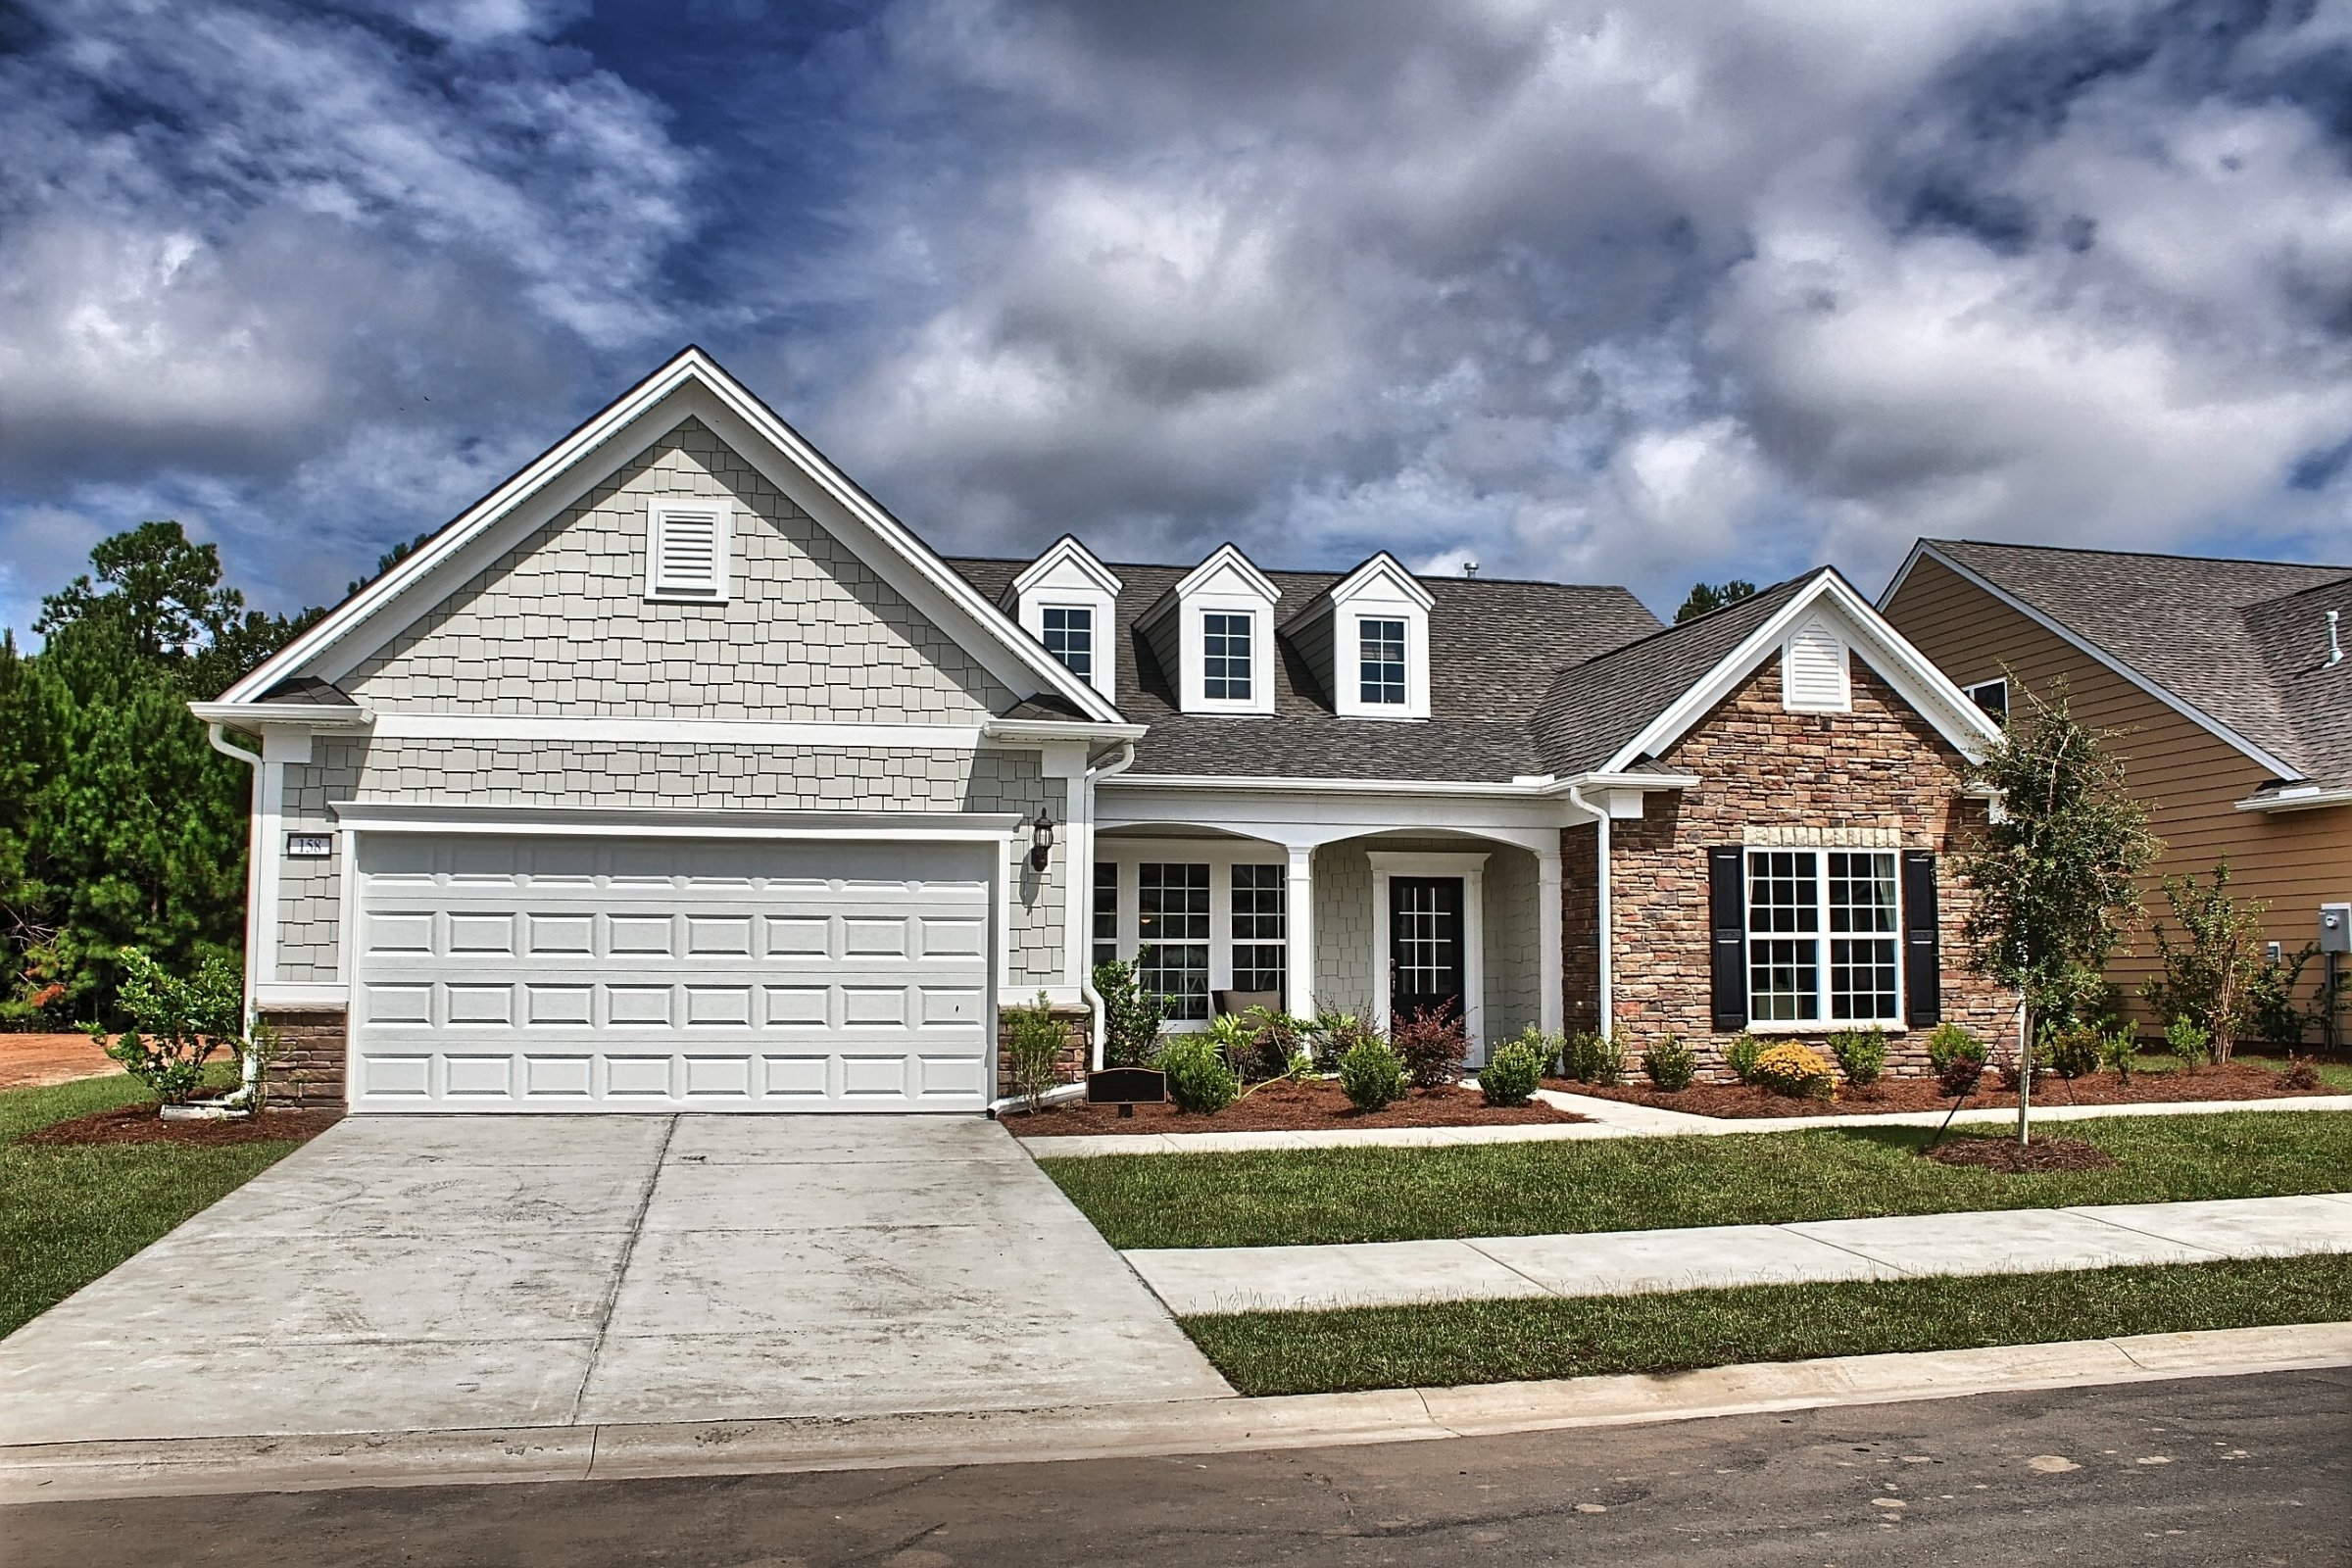 homes for sale in rocklin ca